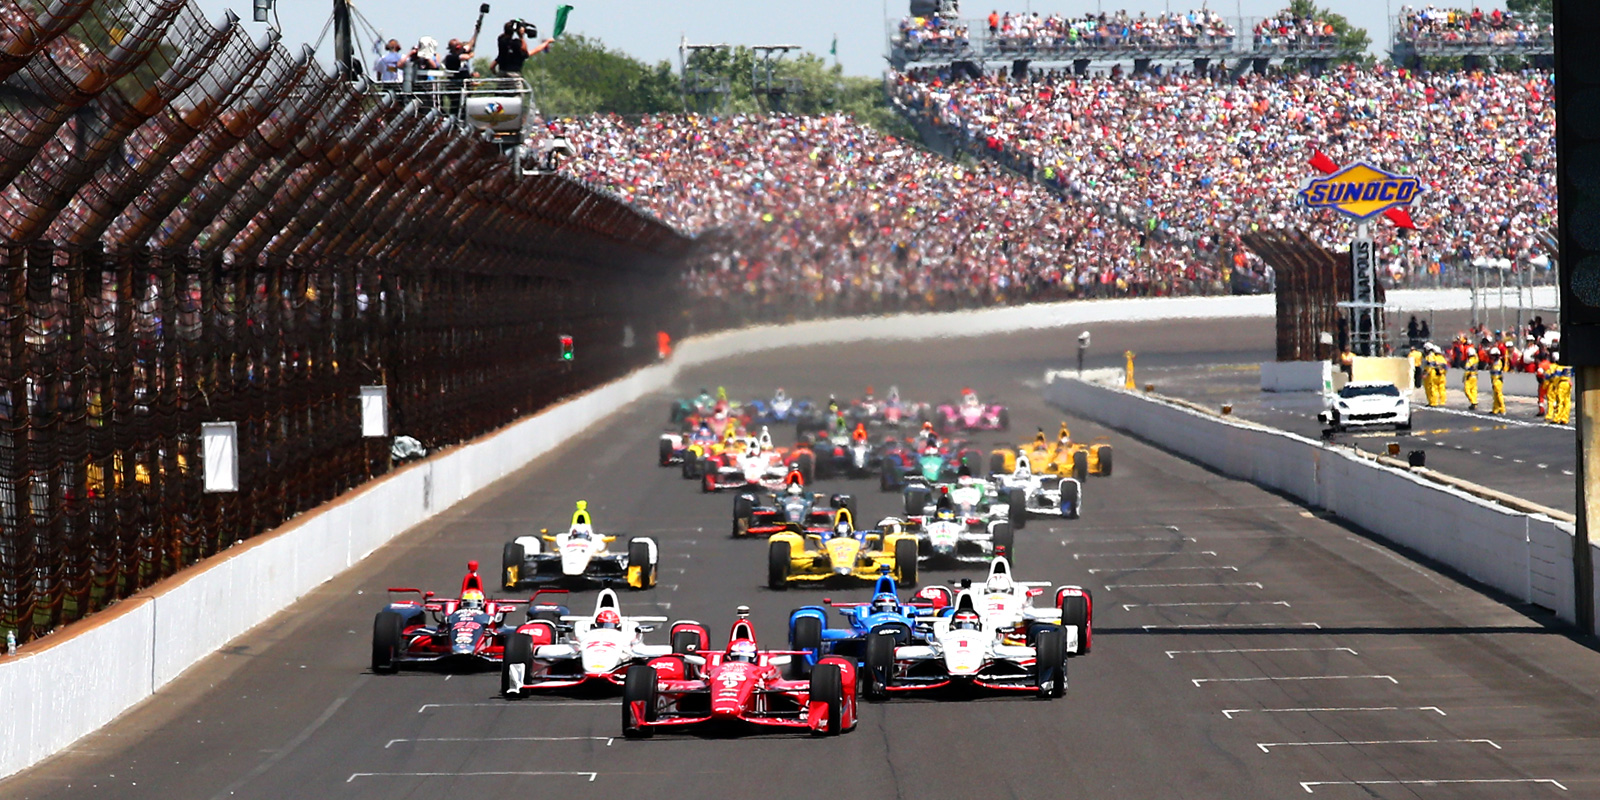 Indy 500 race in Indianapolis, IN